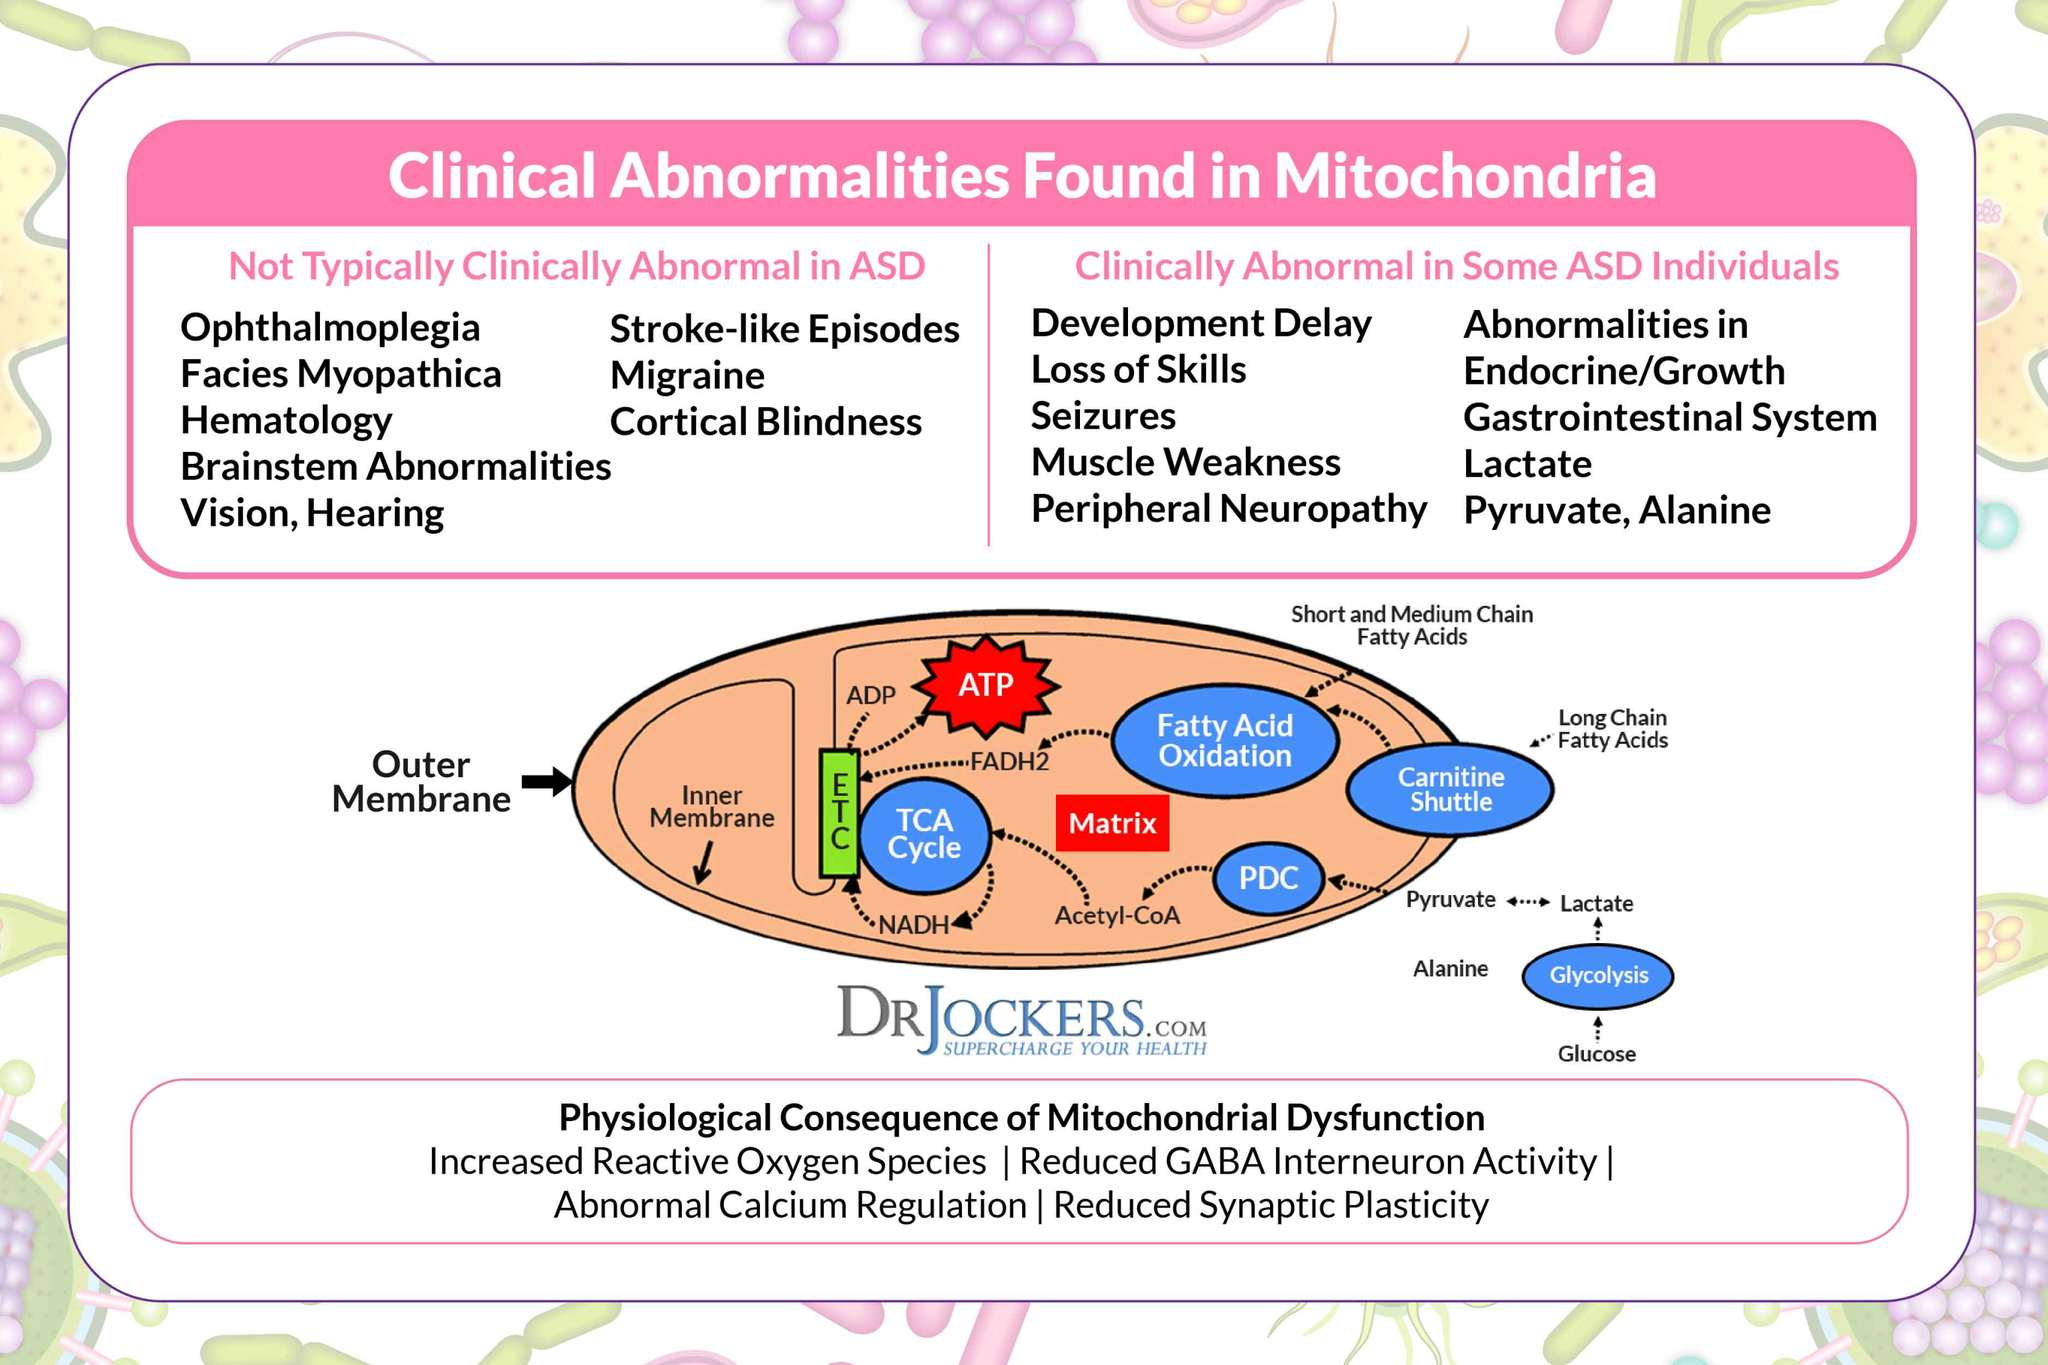 Mitochondrial Dysfunction and Chronic Disease